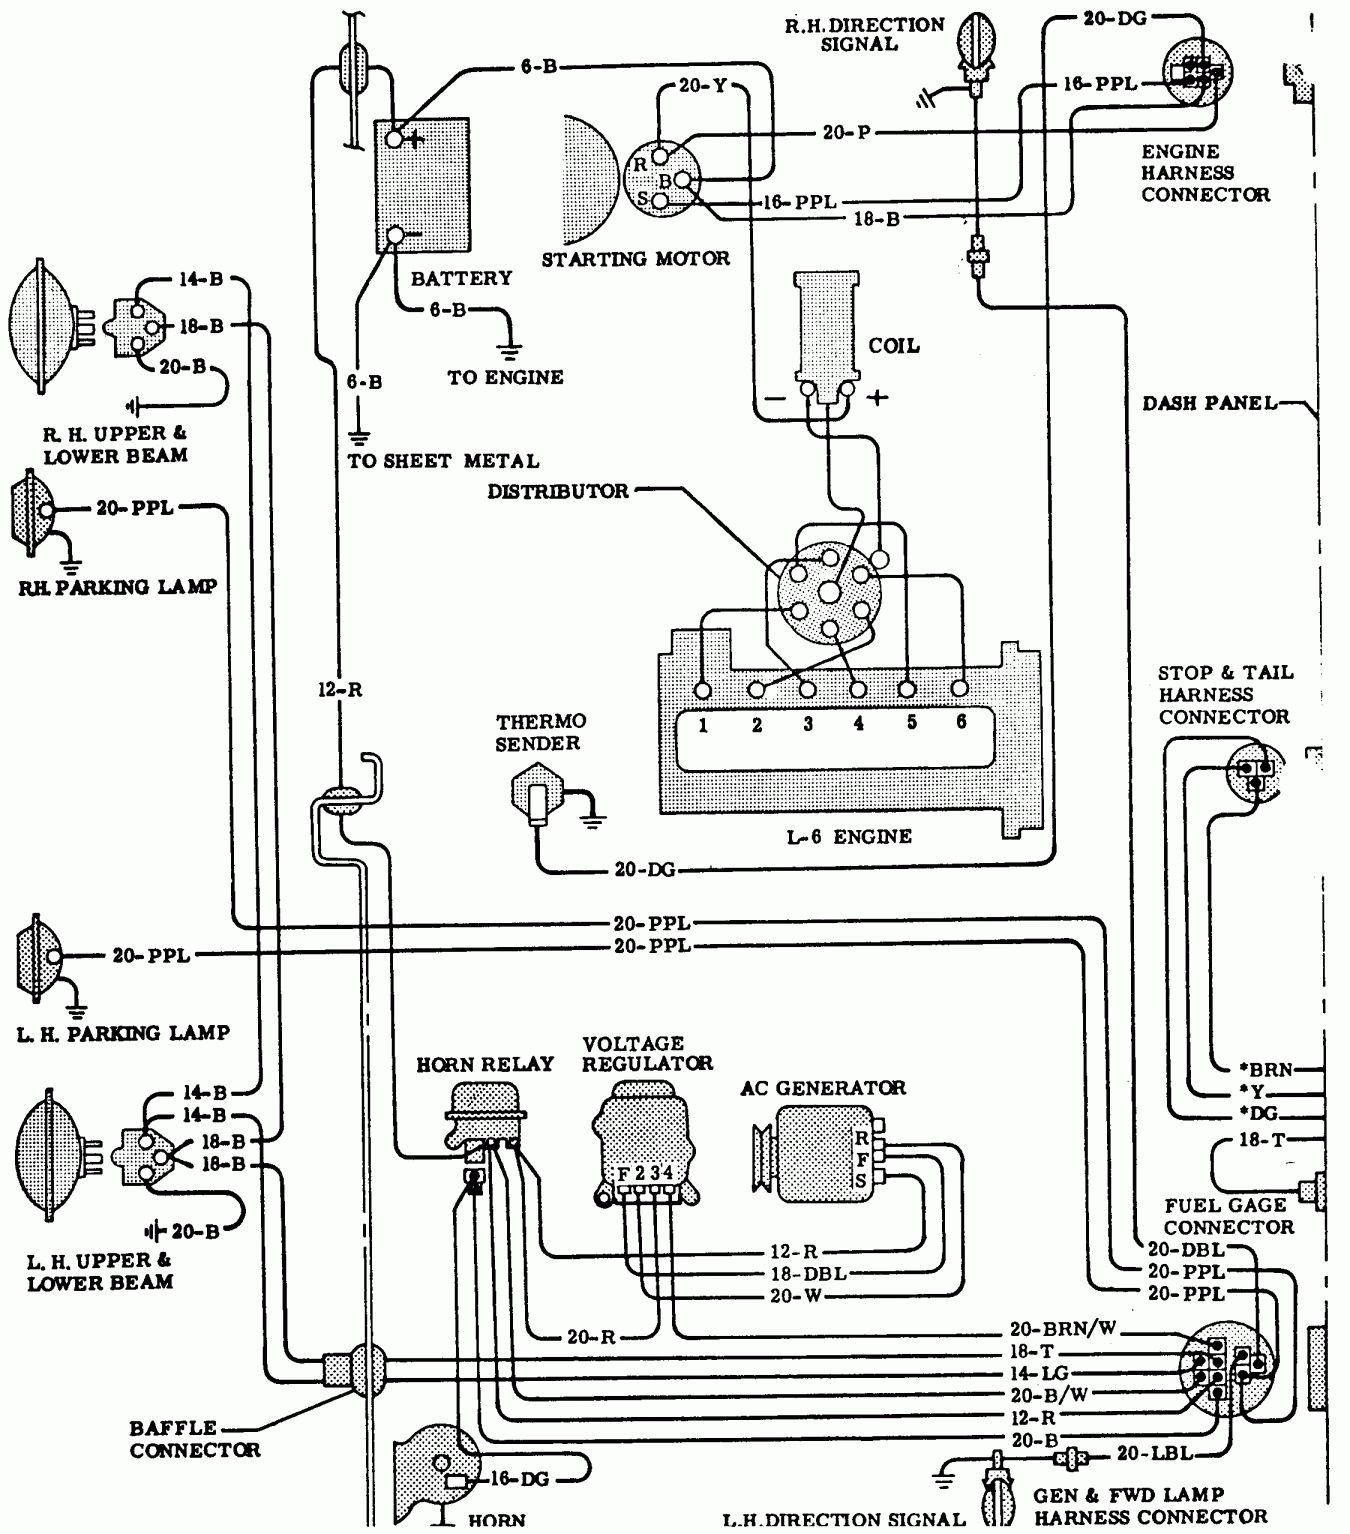 Chevy Truck Electrical Wiring Diagram And Gmc Pickup